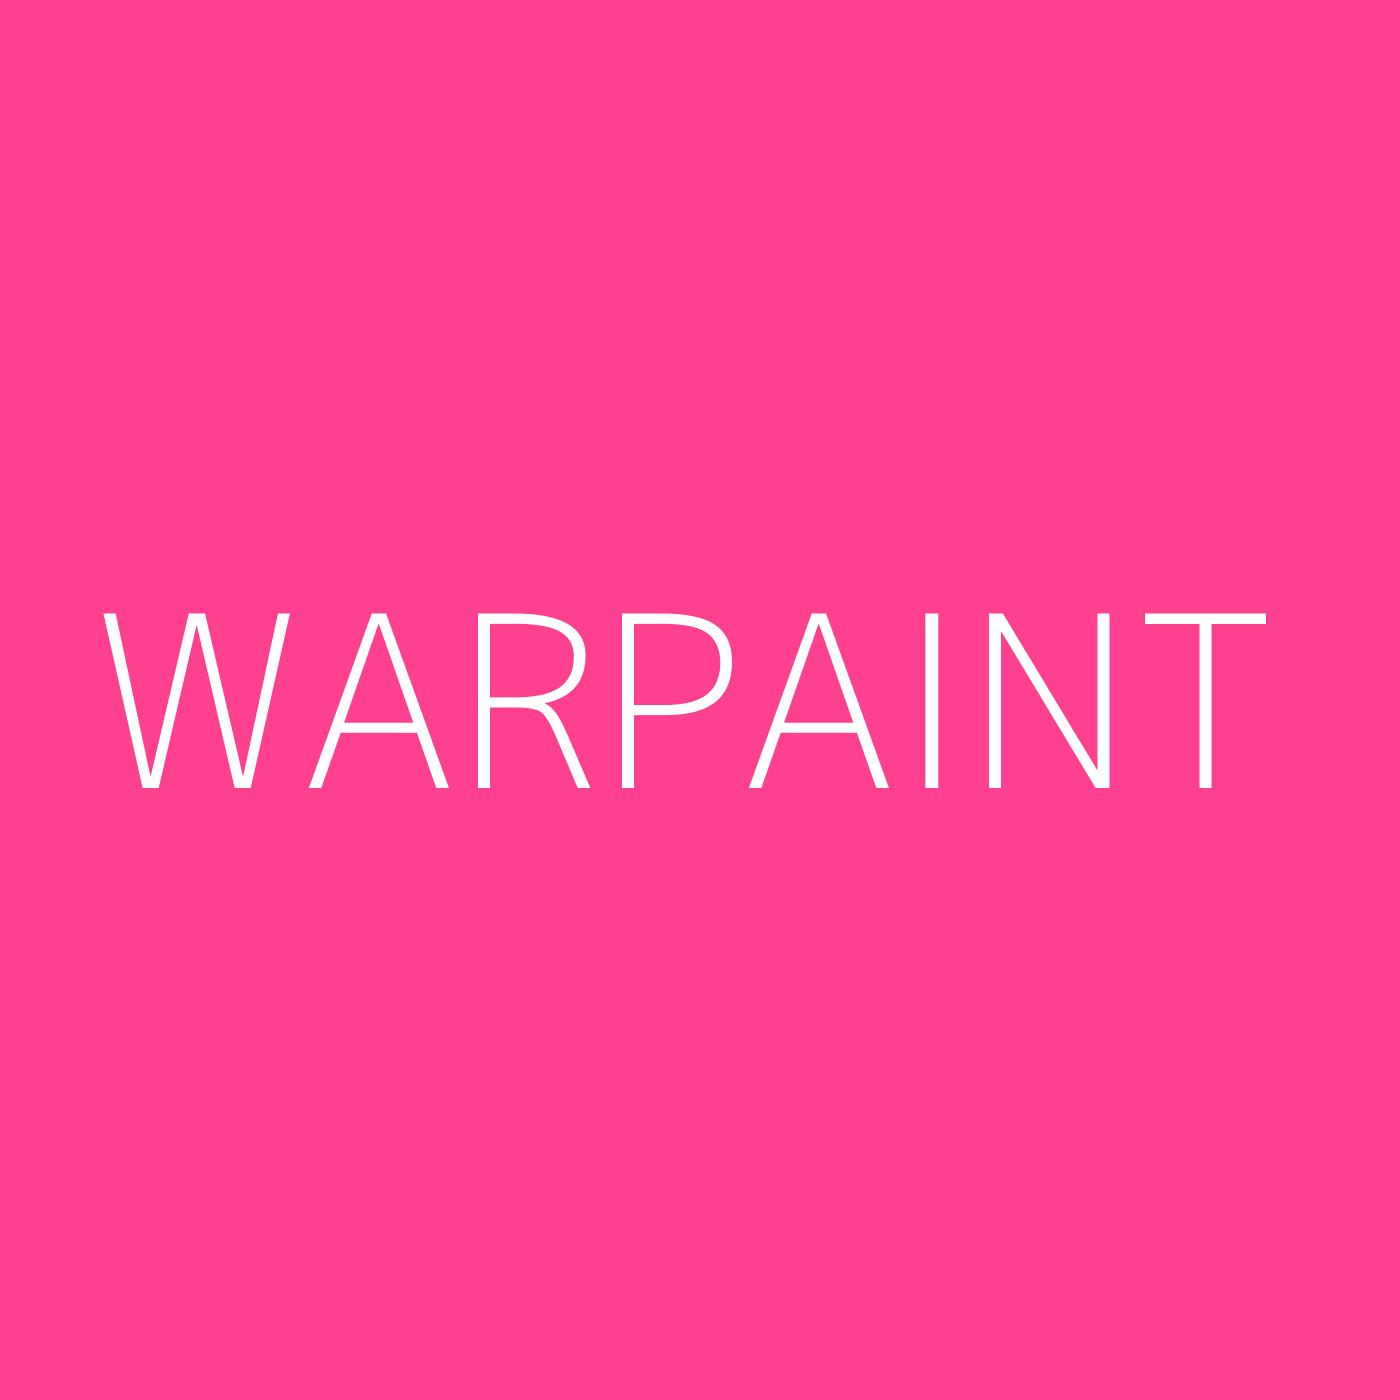 Warpaint Playlist Artwork